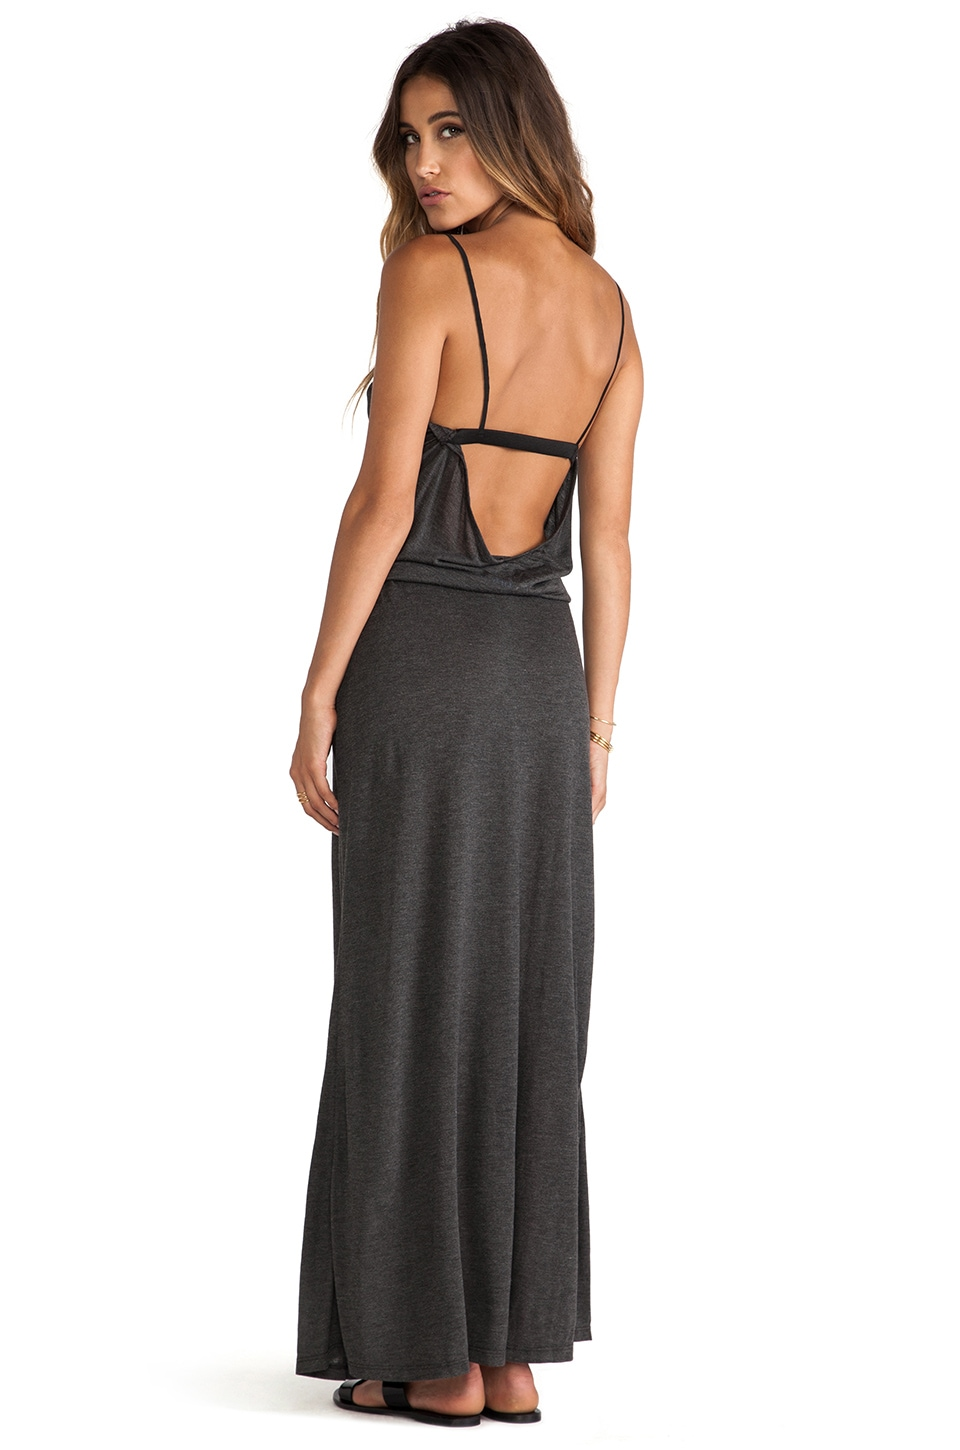 Blue Life Tie Me Up Maxi Dress in Steel Grey